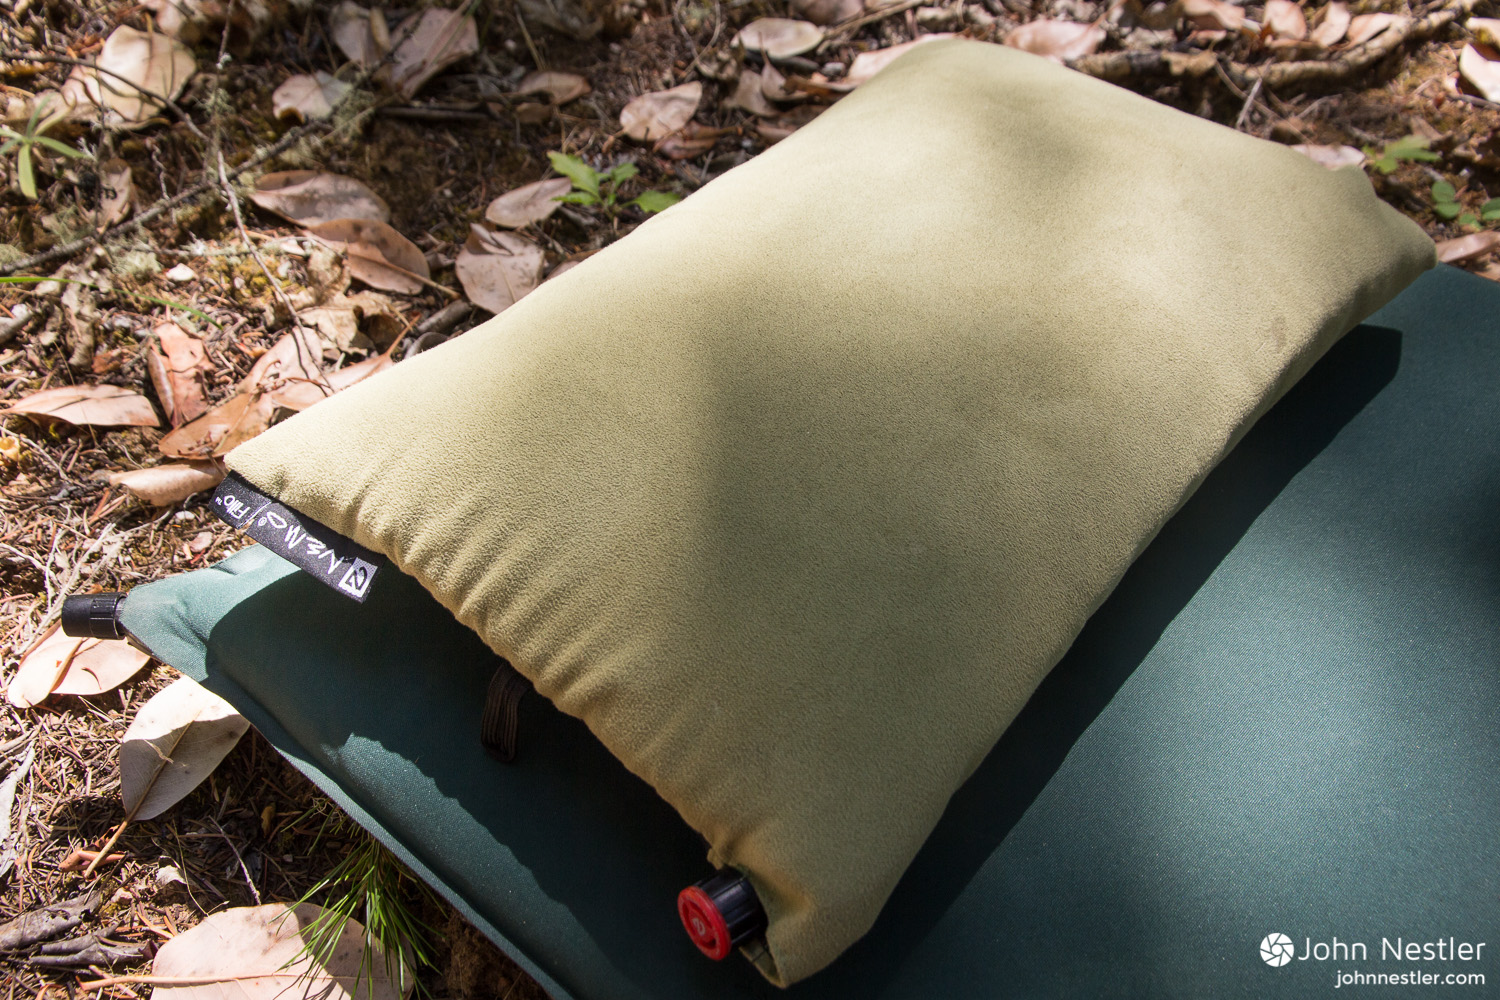 The Nemo Fillo adds inflatable luxury to outdoor adventures.